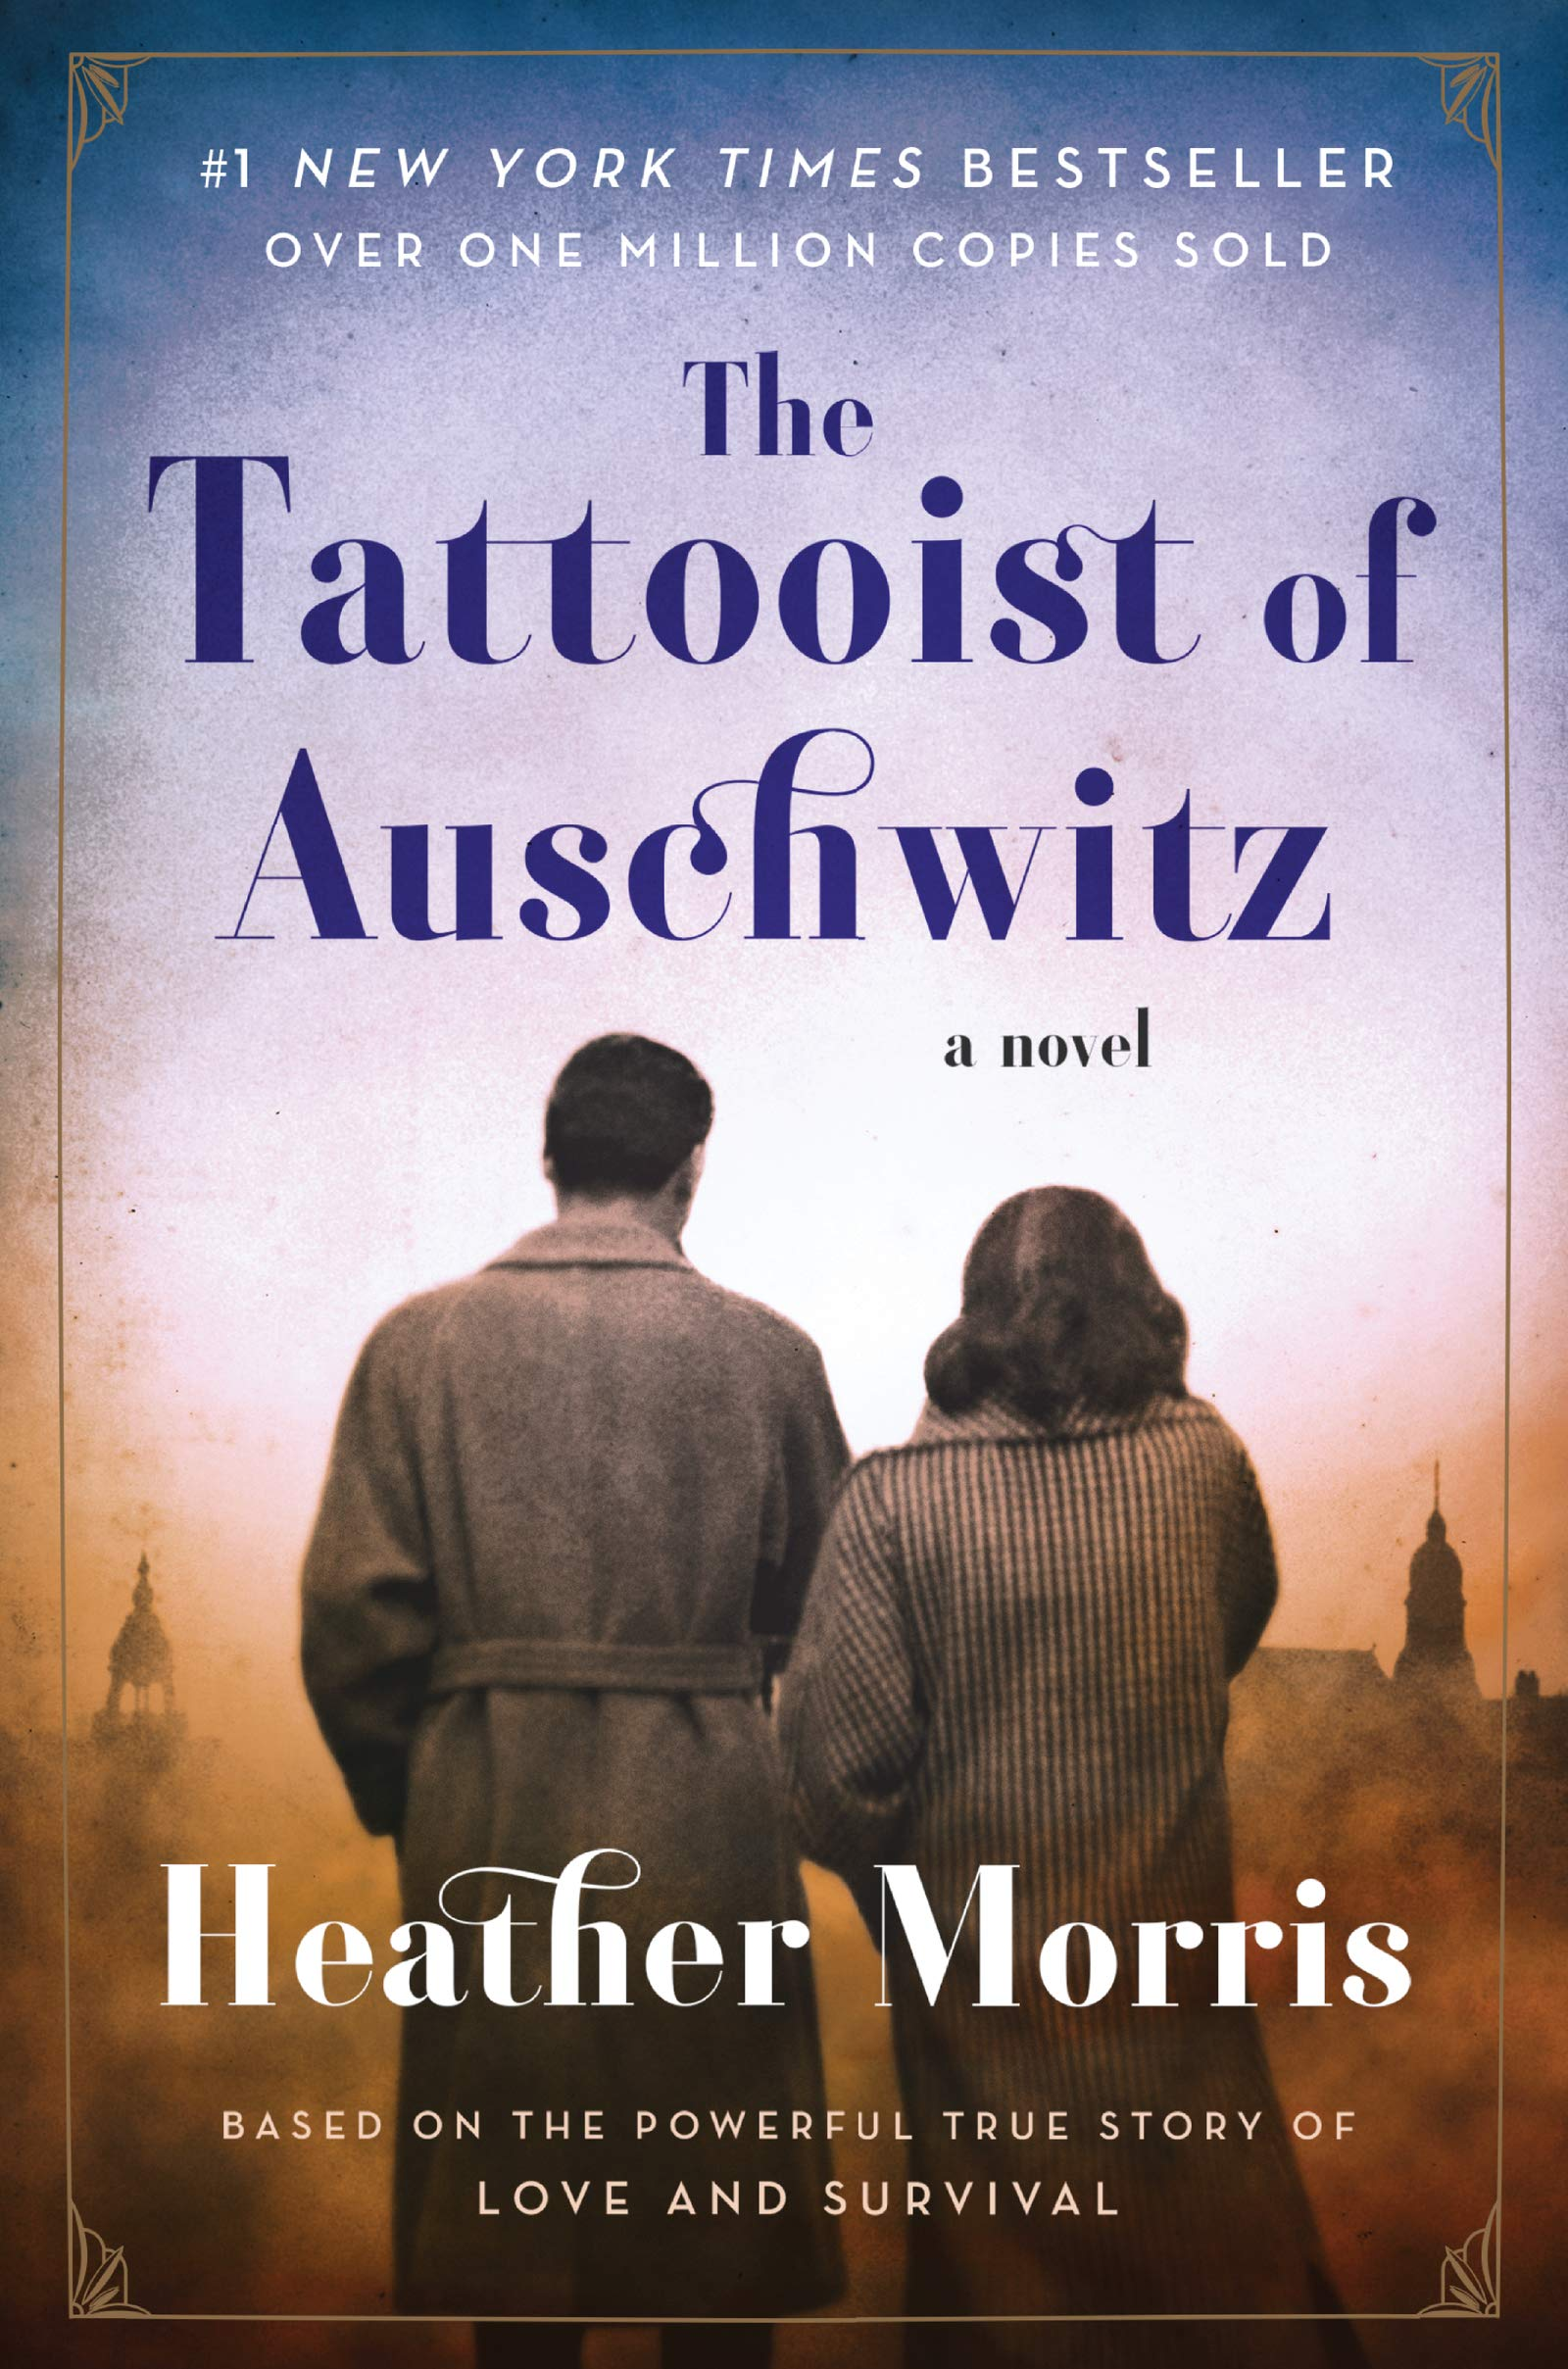 Image result for the tattooist of auschwitz by heather morris""